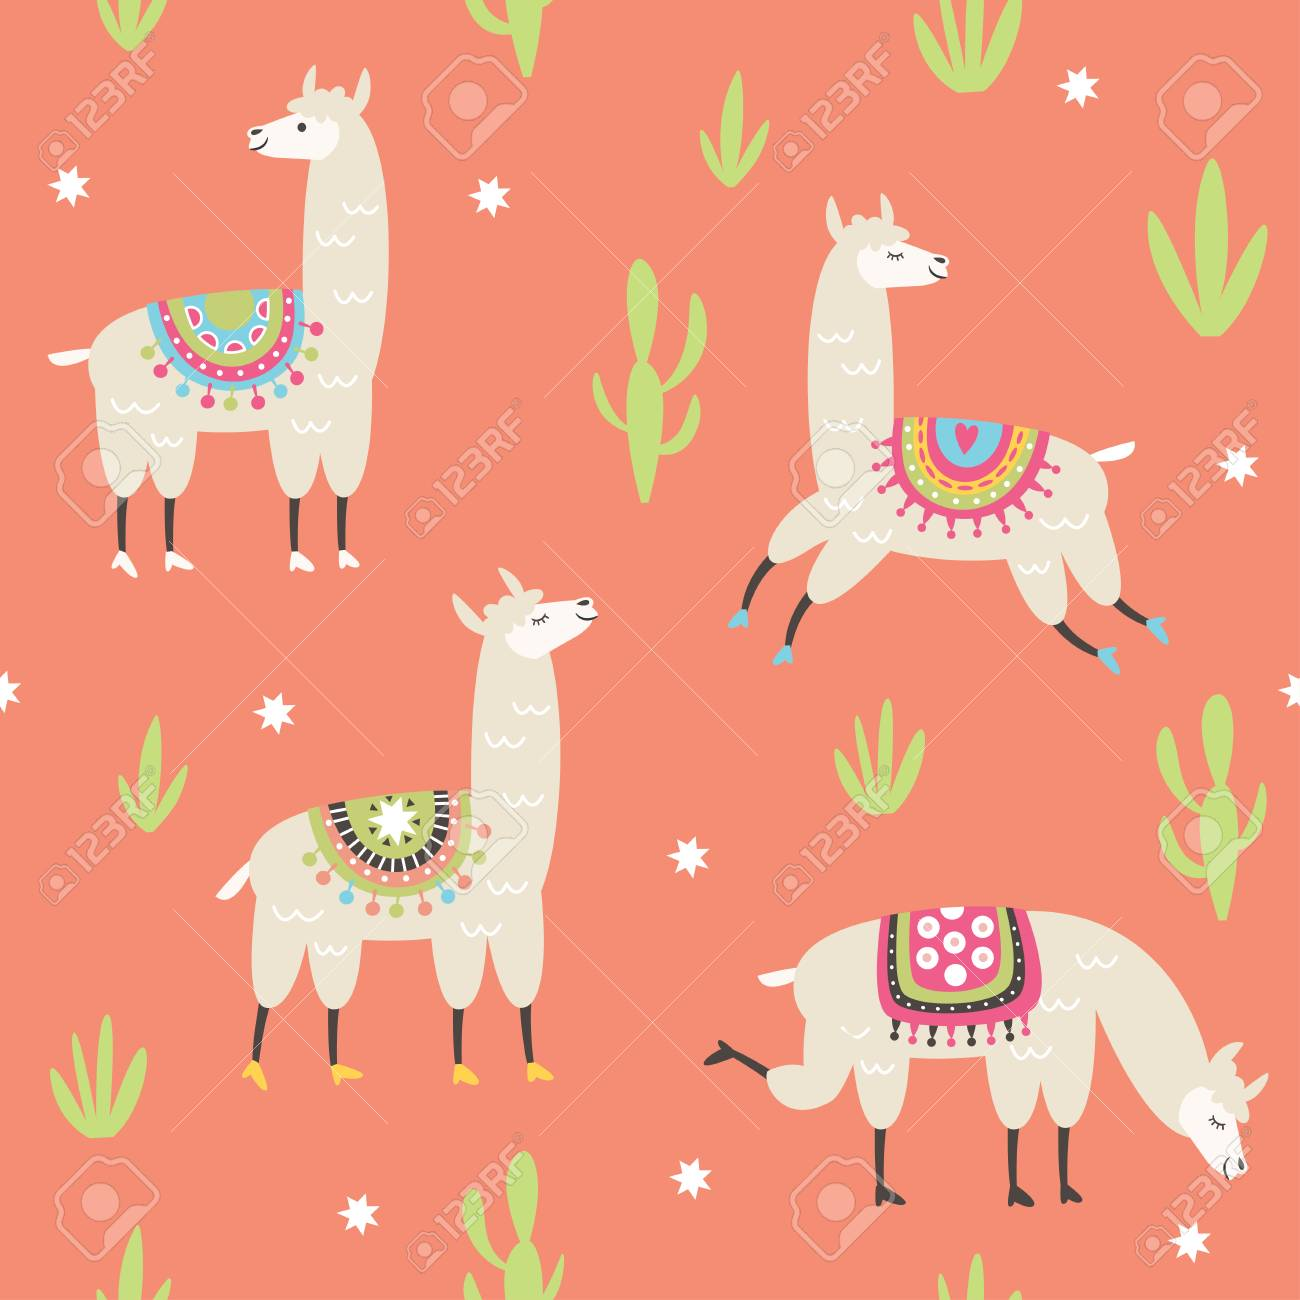 Seamless Pattern With Cute Llama Illustrations Pink Background 1300x1300